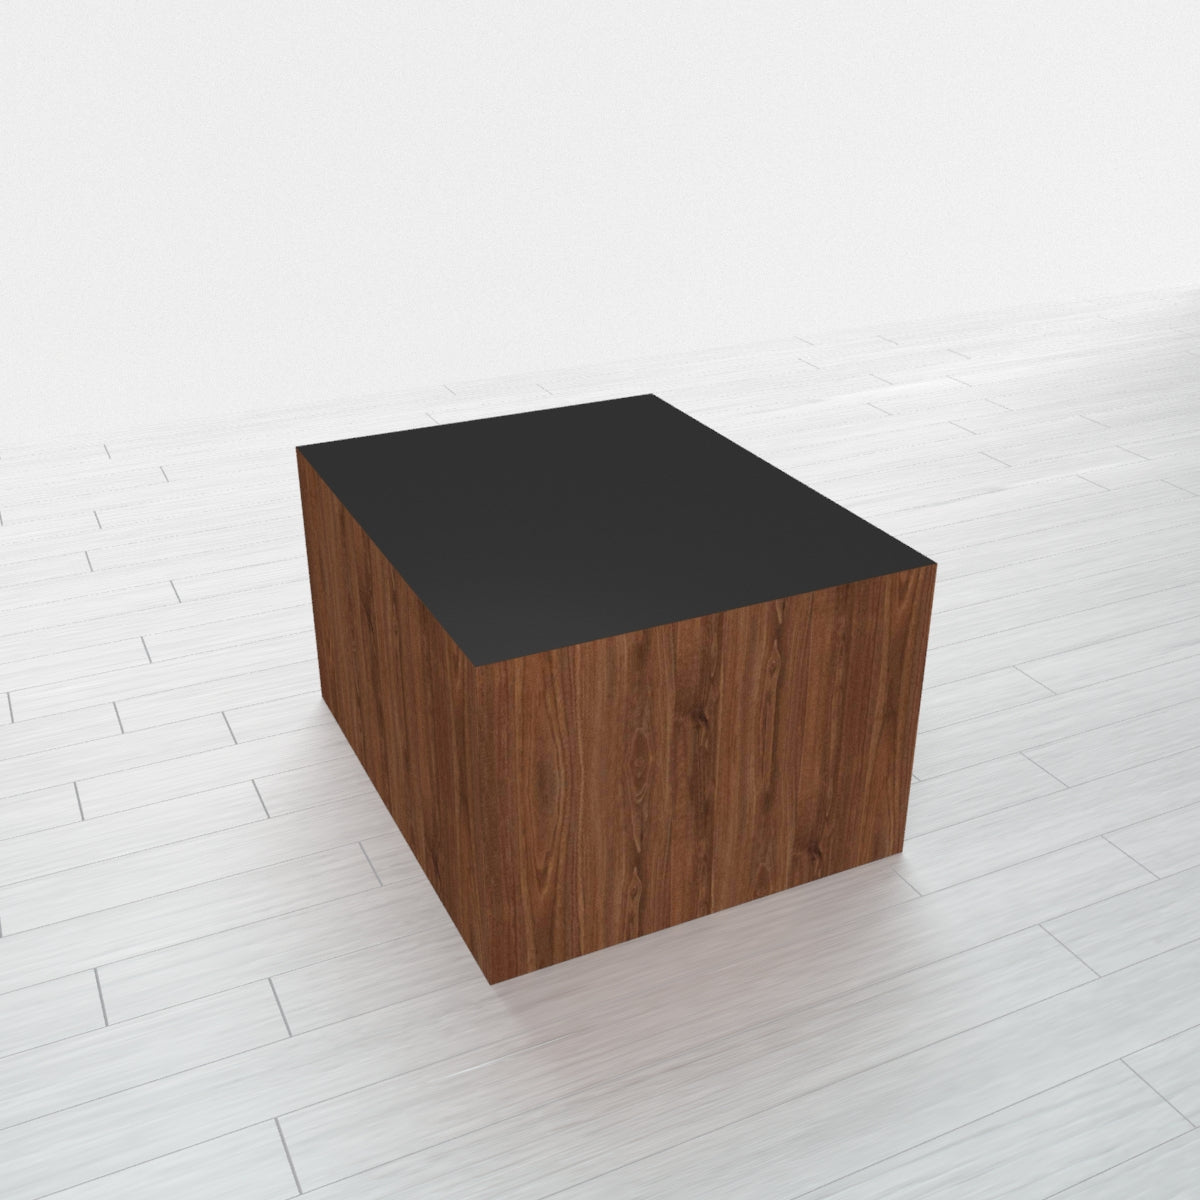 RECTANGLE - Thermo Walnut Base + Black Top - 16x20